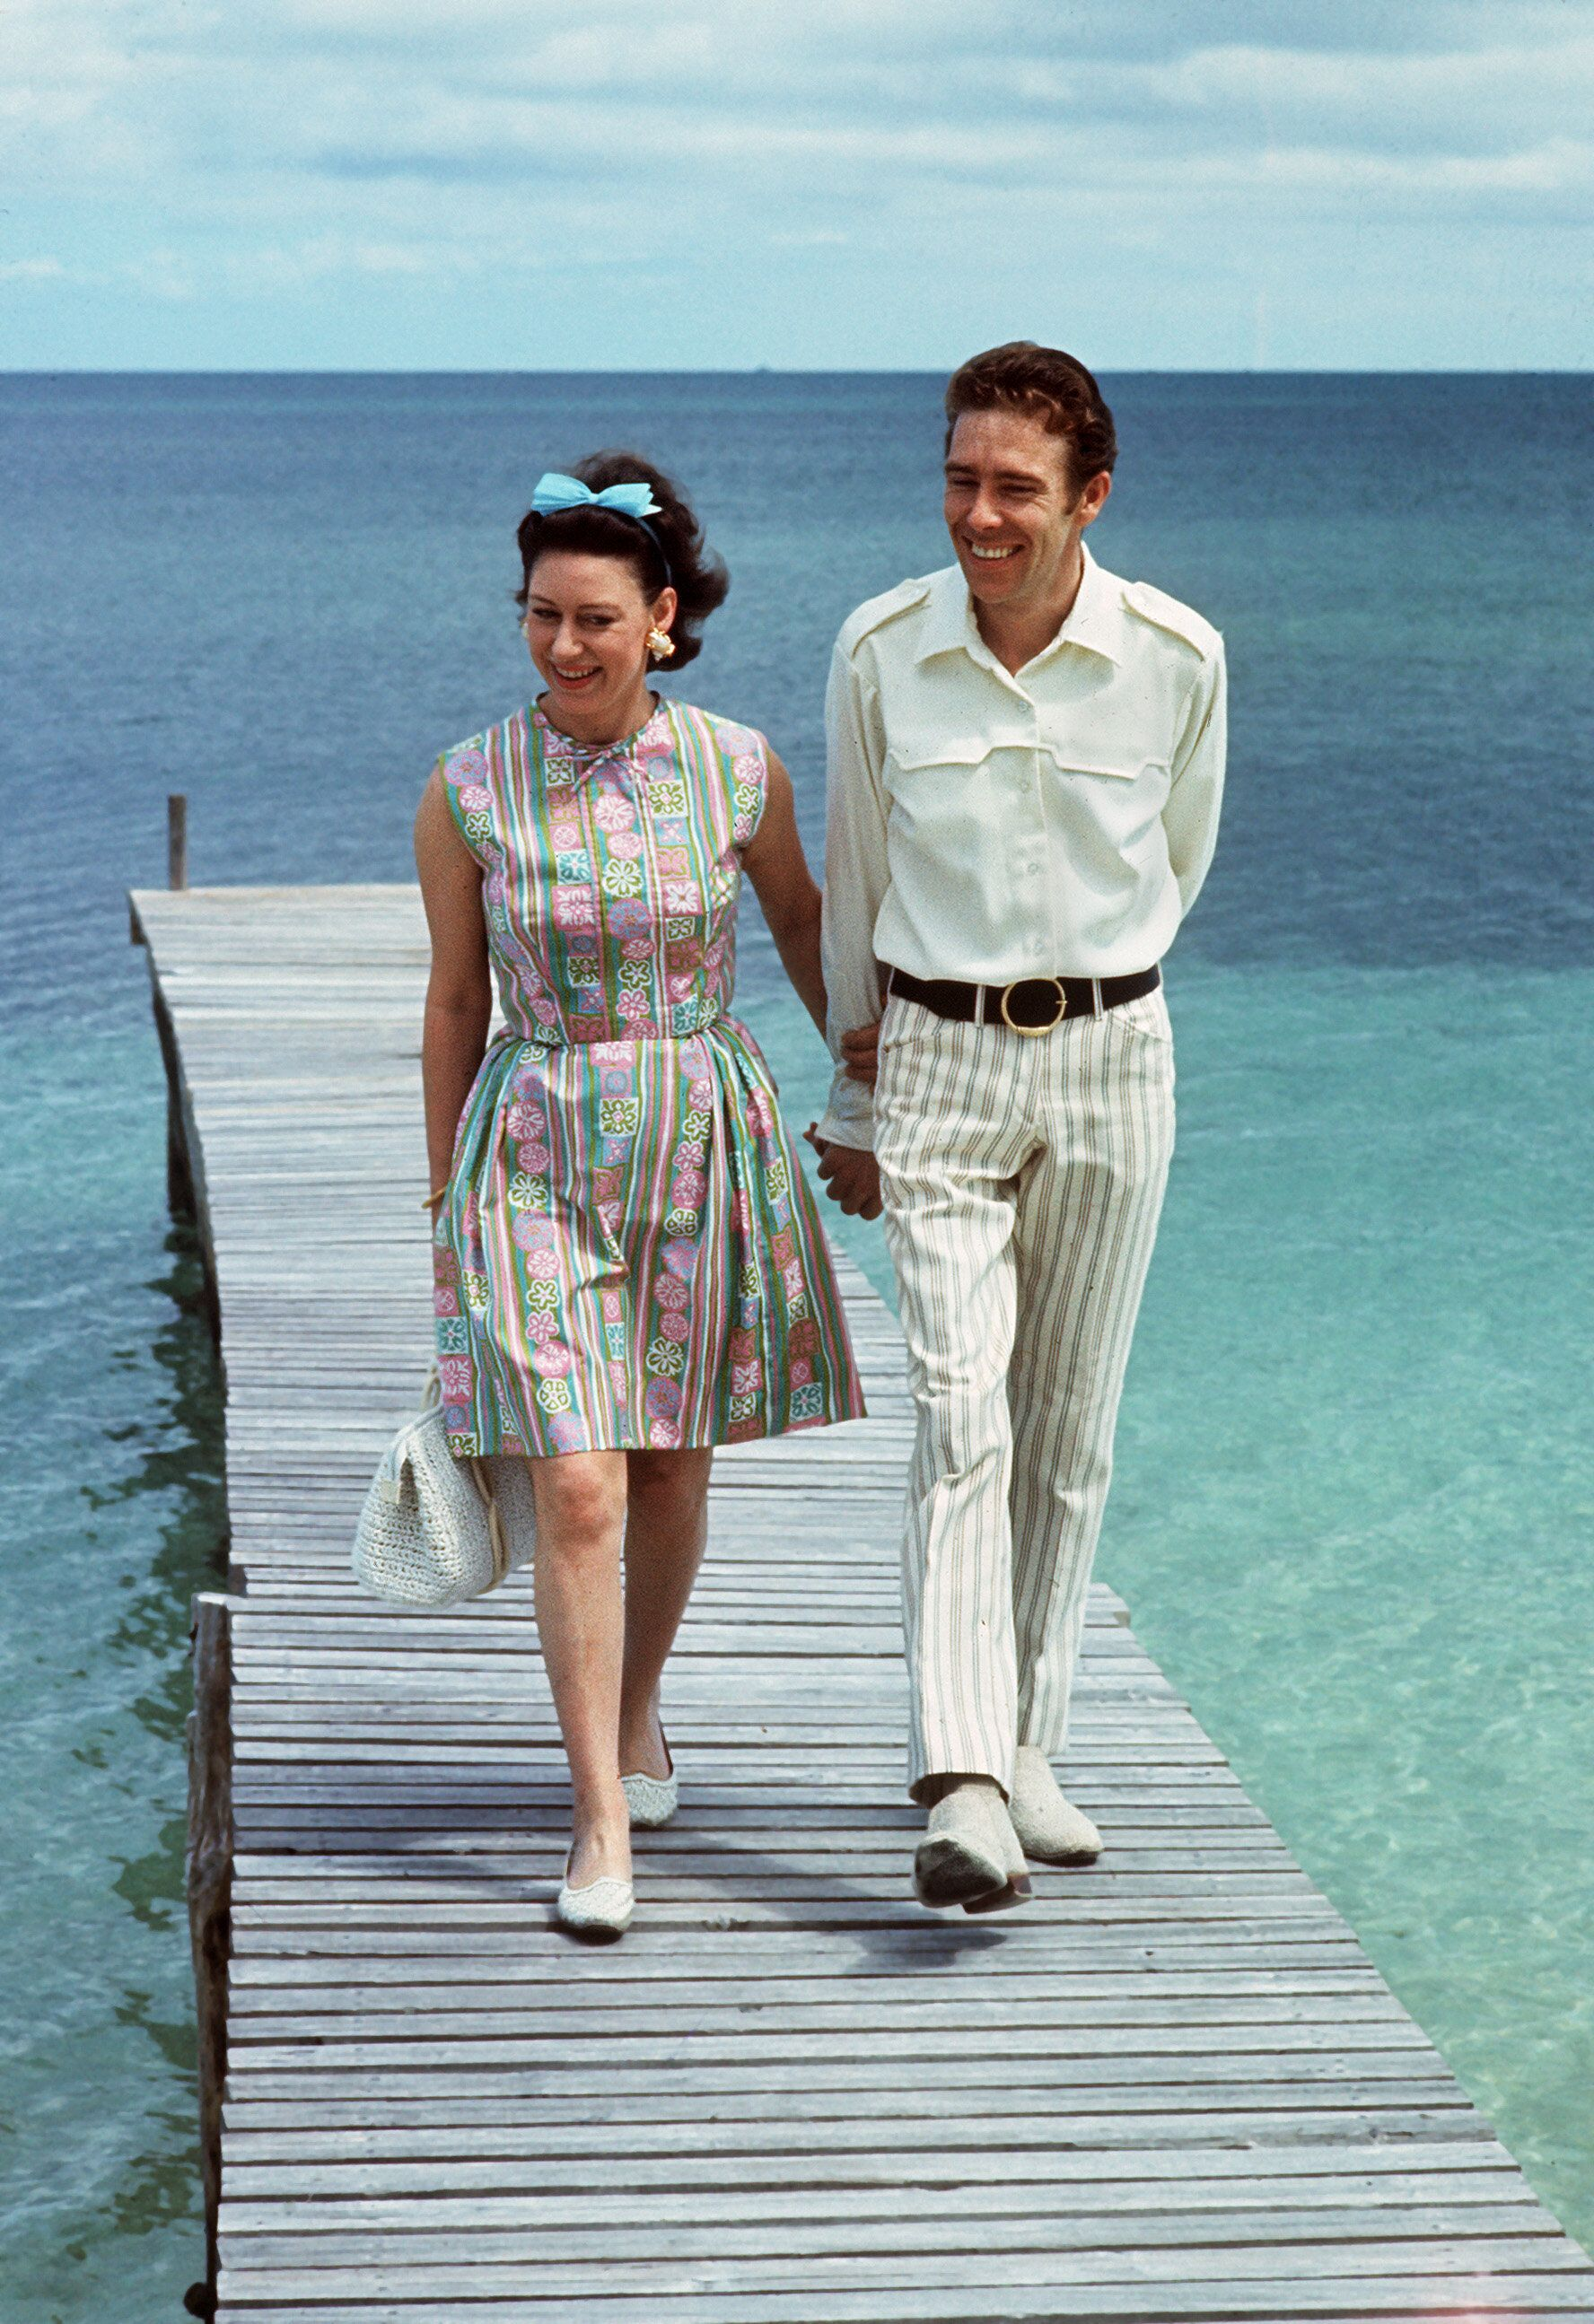 Princess Margaret and her husband, the Earl of Snowdon, in the Bahamas in 1967.